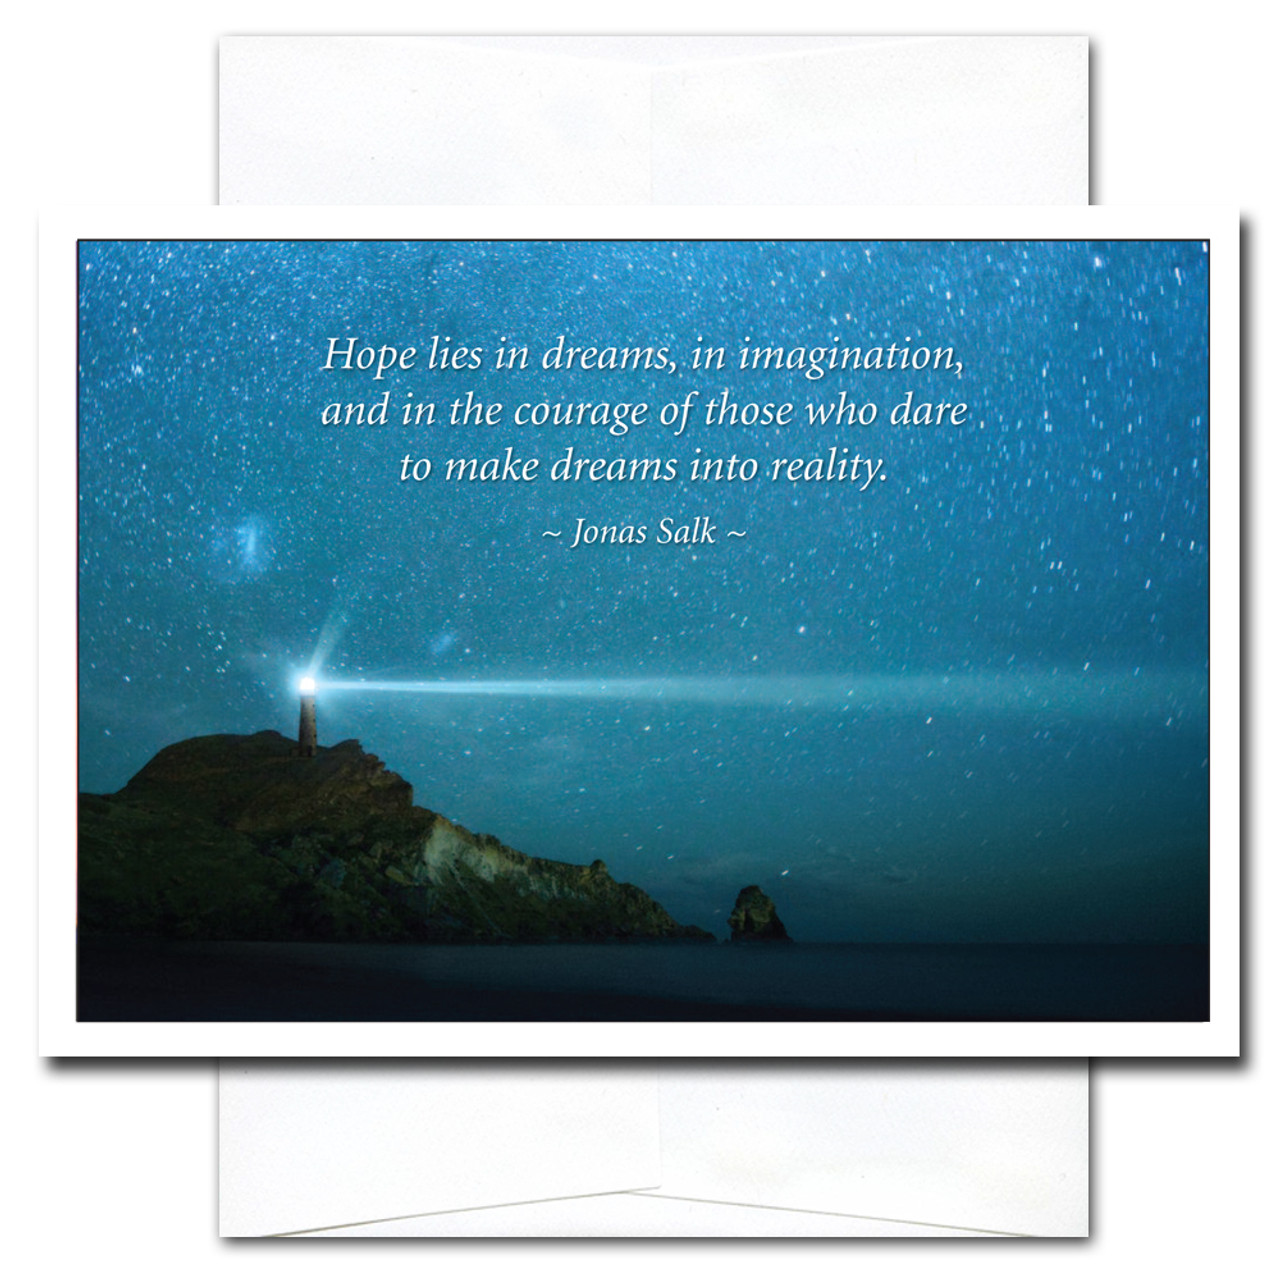 Beacon Congratulations Card shows a lighthouse against a starry sky with the quote: Hope lies in dreams, in imagination, and in the courage of those who dare to make dreams into reality. – Jonas Salk